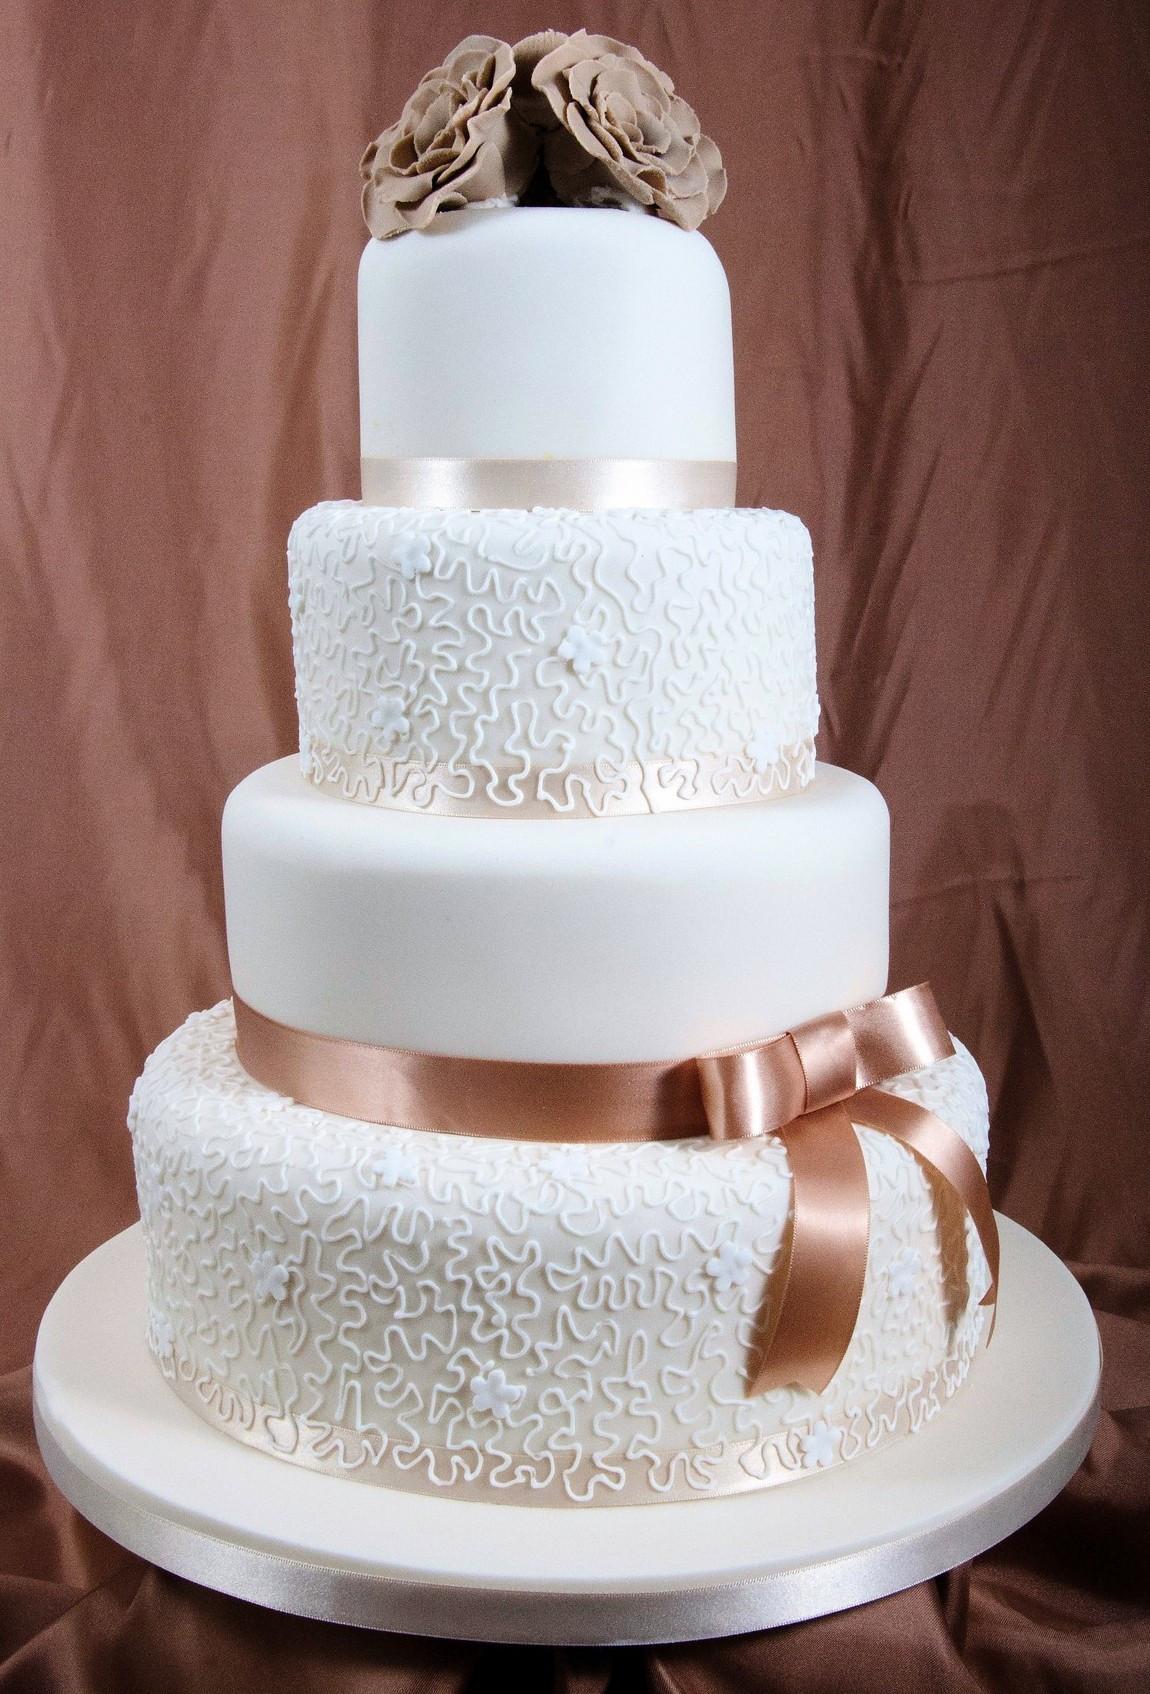 Delicious Wedding Cakes  Wedding Cake Ideas Delicious Symphony Wedding and